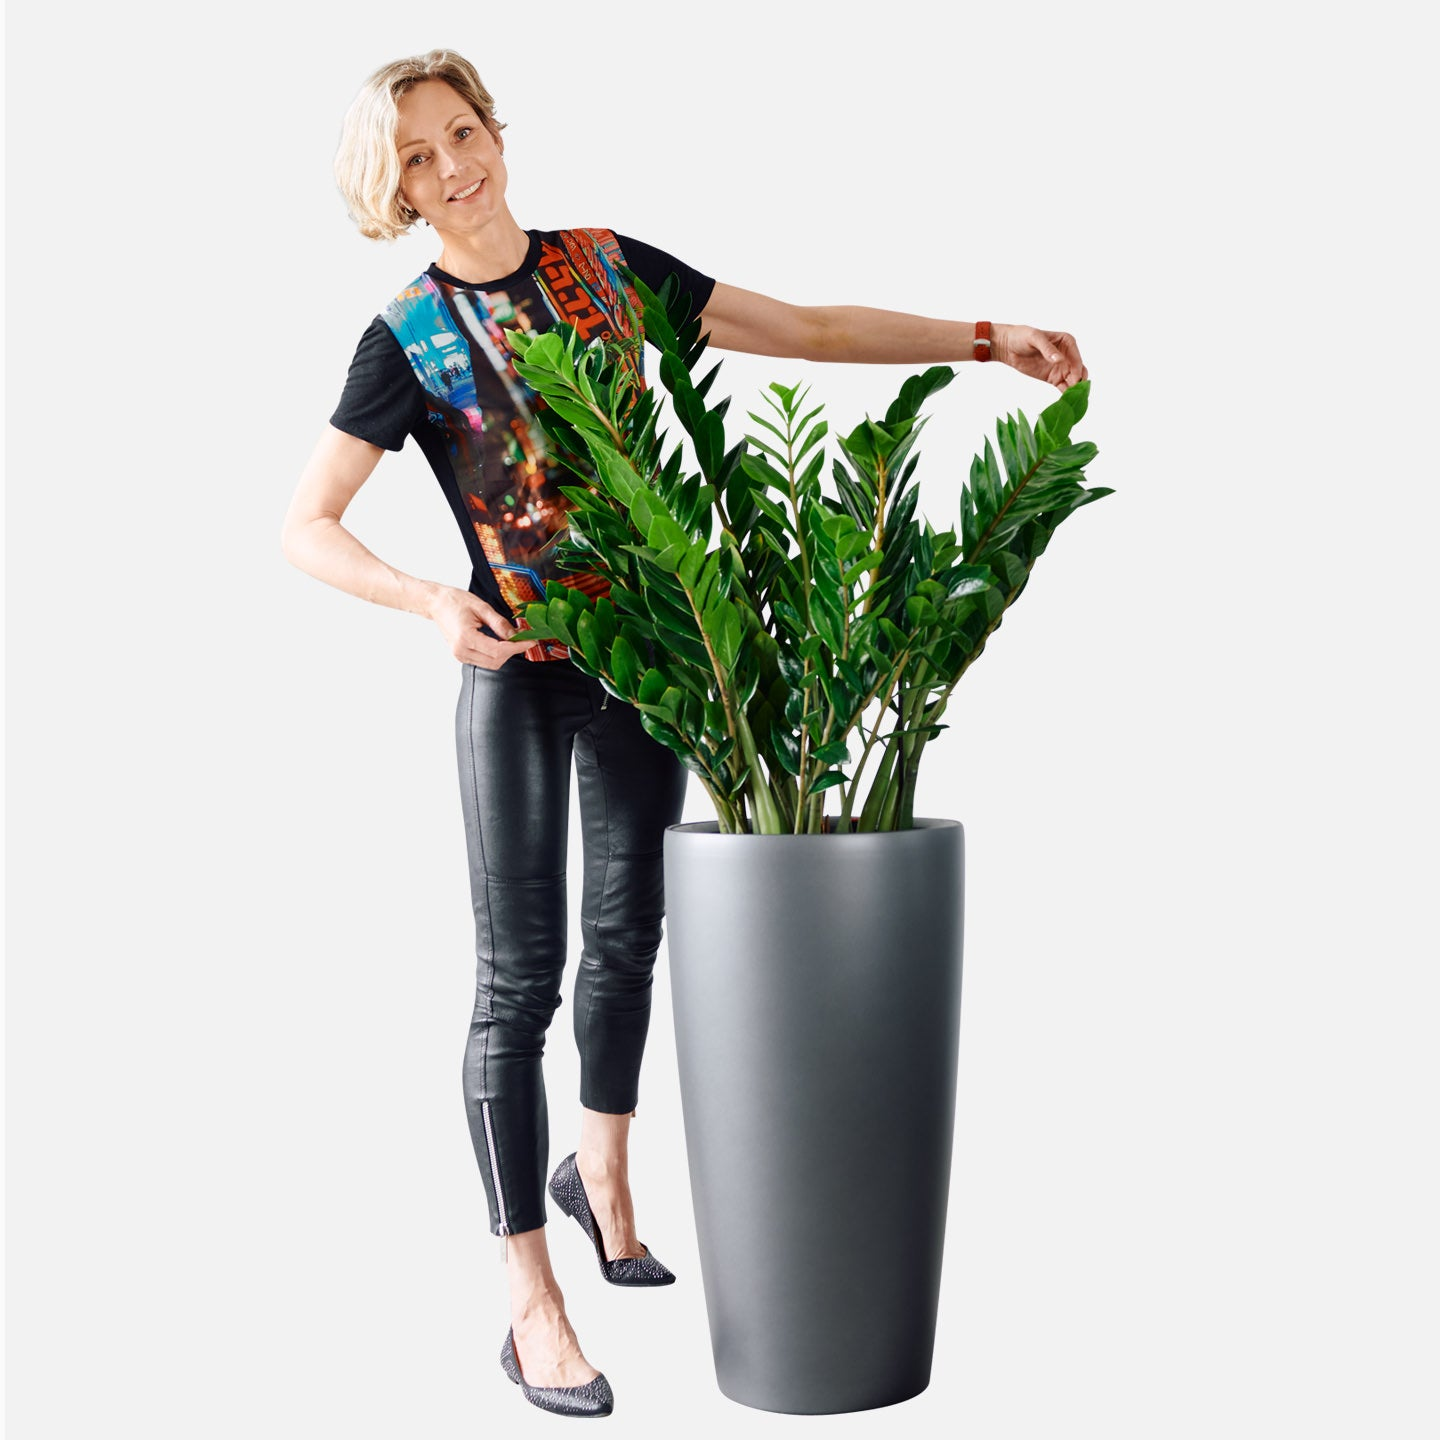 ZZ Plant Potted In Rondo 40 Charcoal Planter | My City Plants